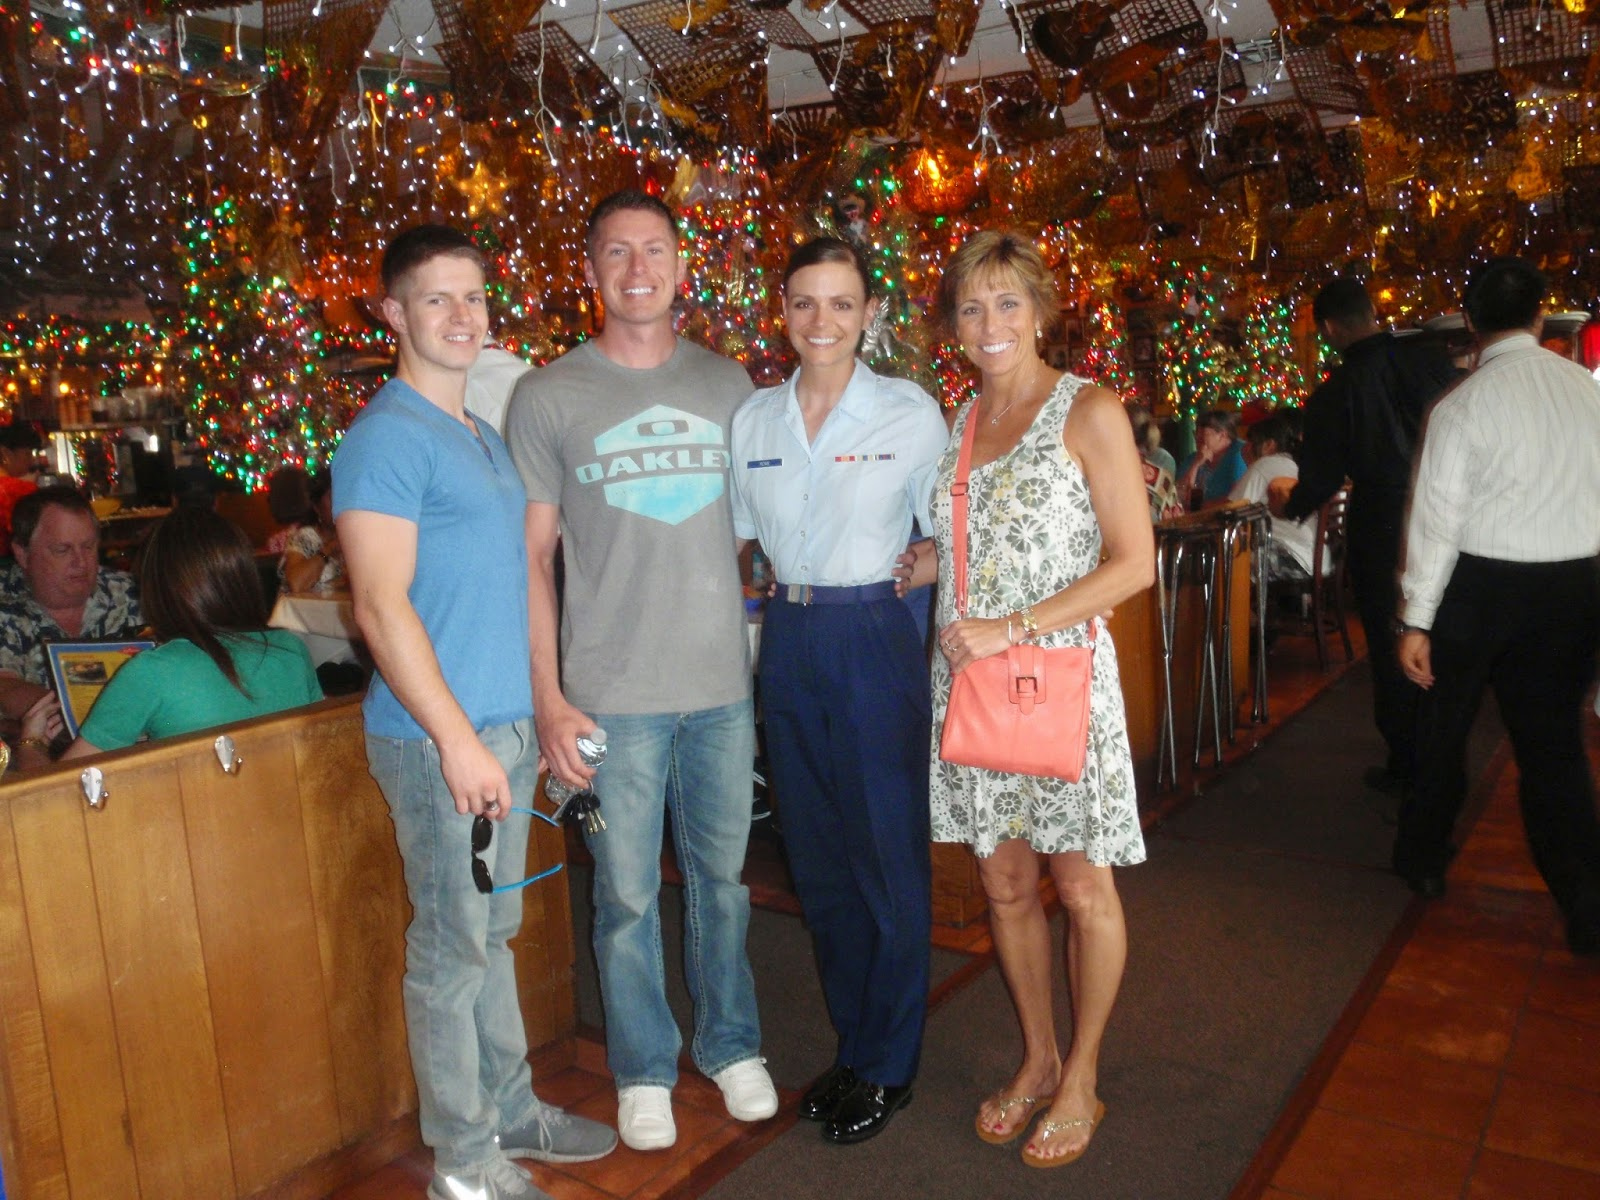 BMT Graduation, Town Pass in San Antonio, Mi Tierra at El Mercado